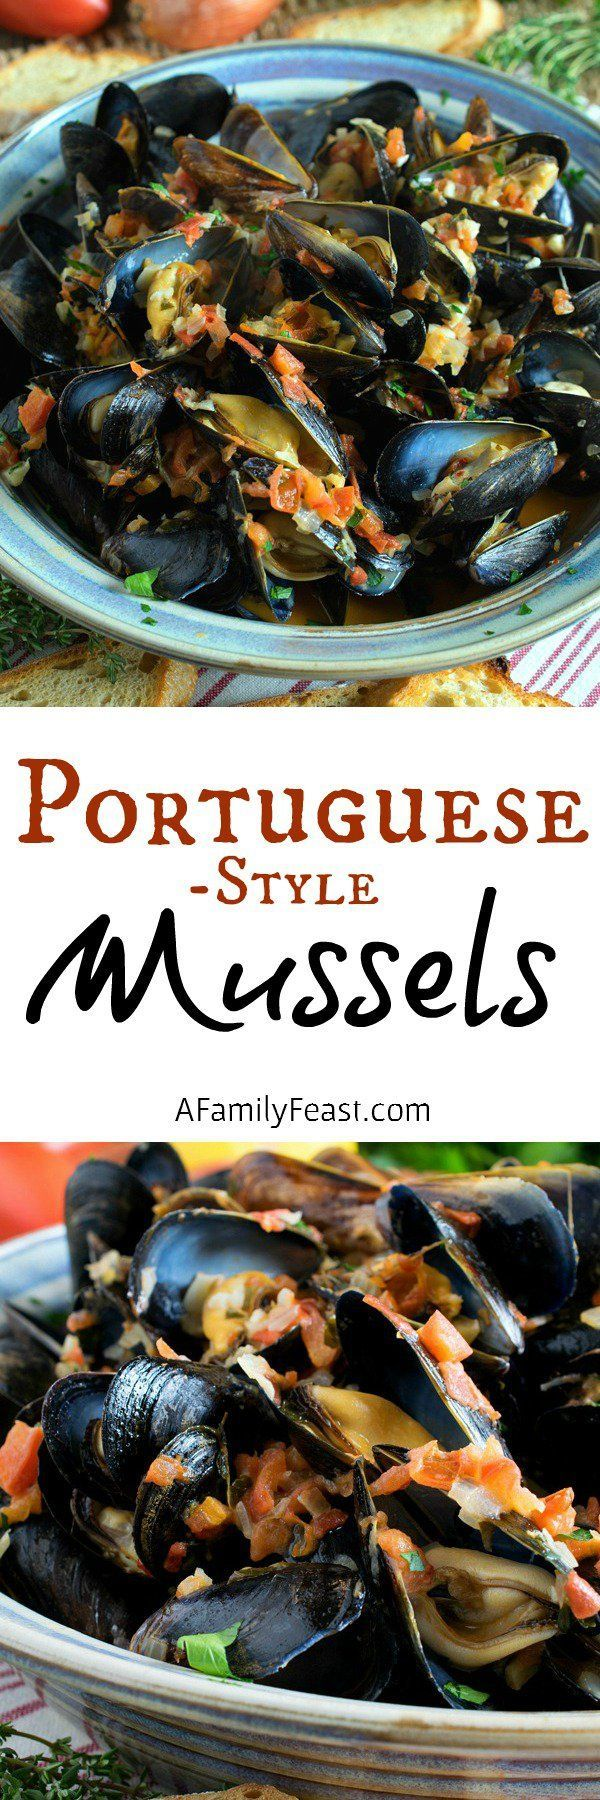 Portuguese-Style Mussels in Garlic Cream Sauce - A Family Feast